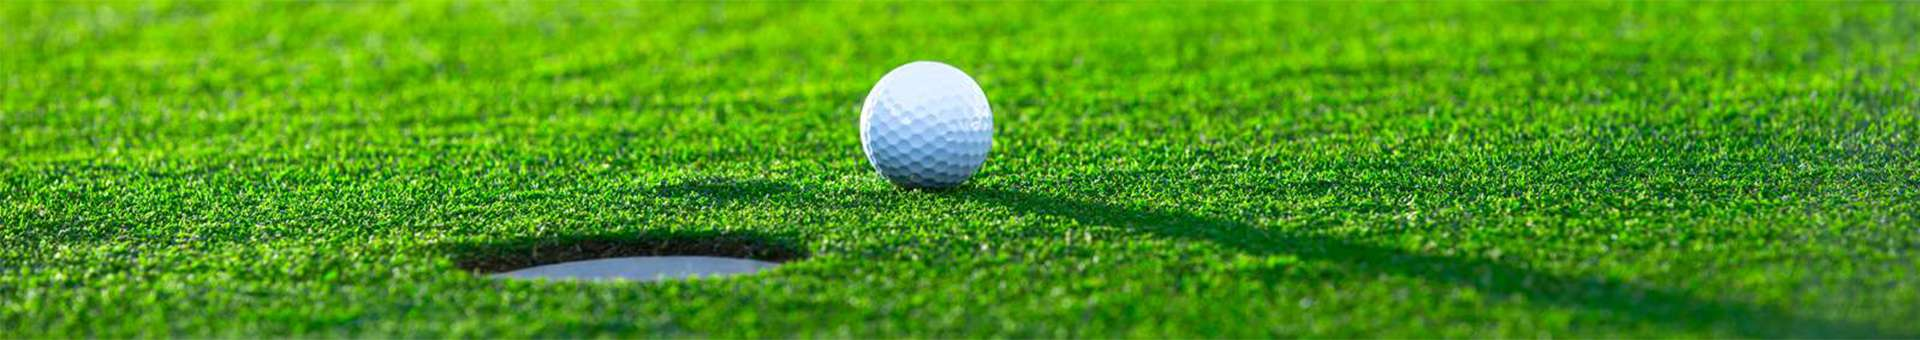 Search Whois information of domain names  .golf